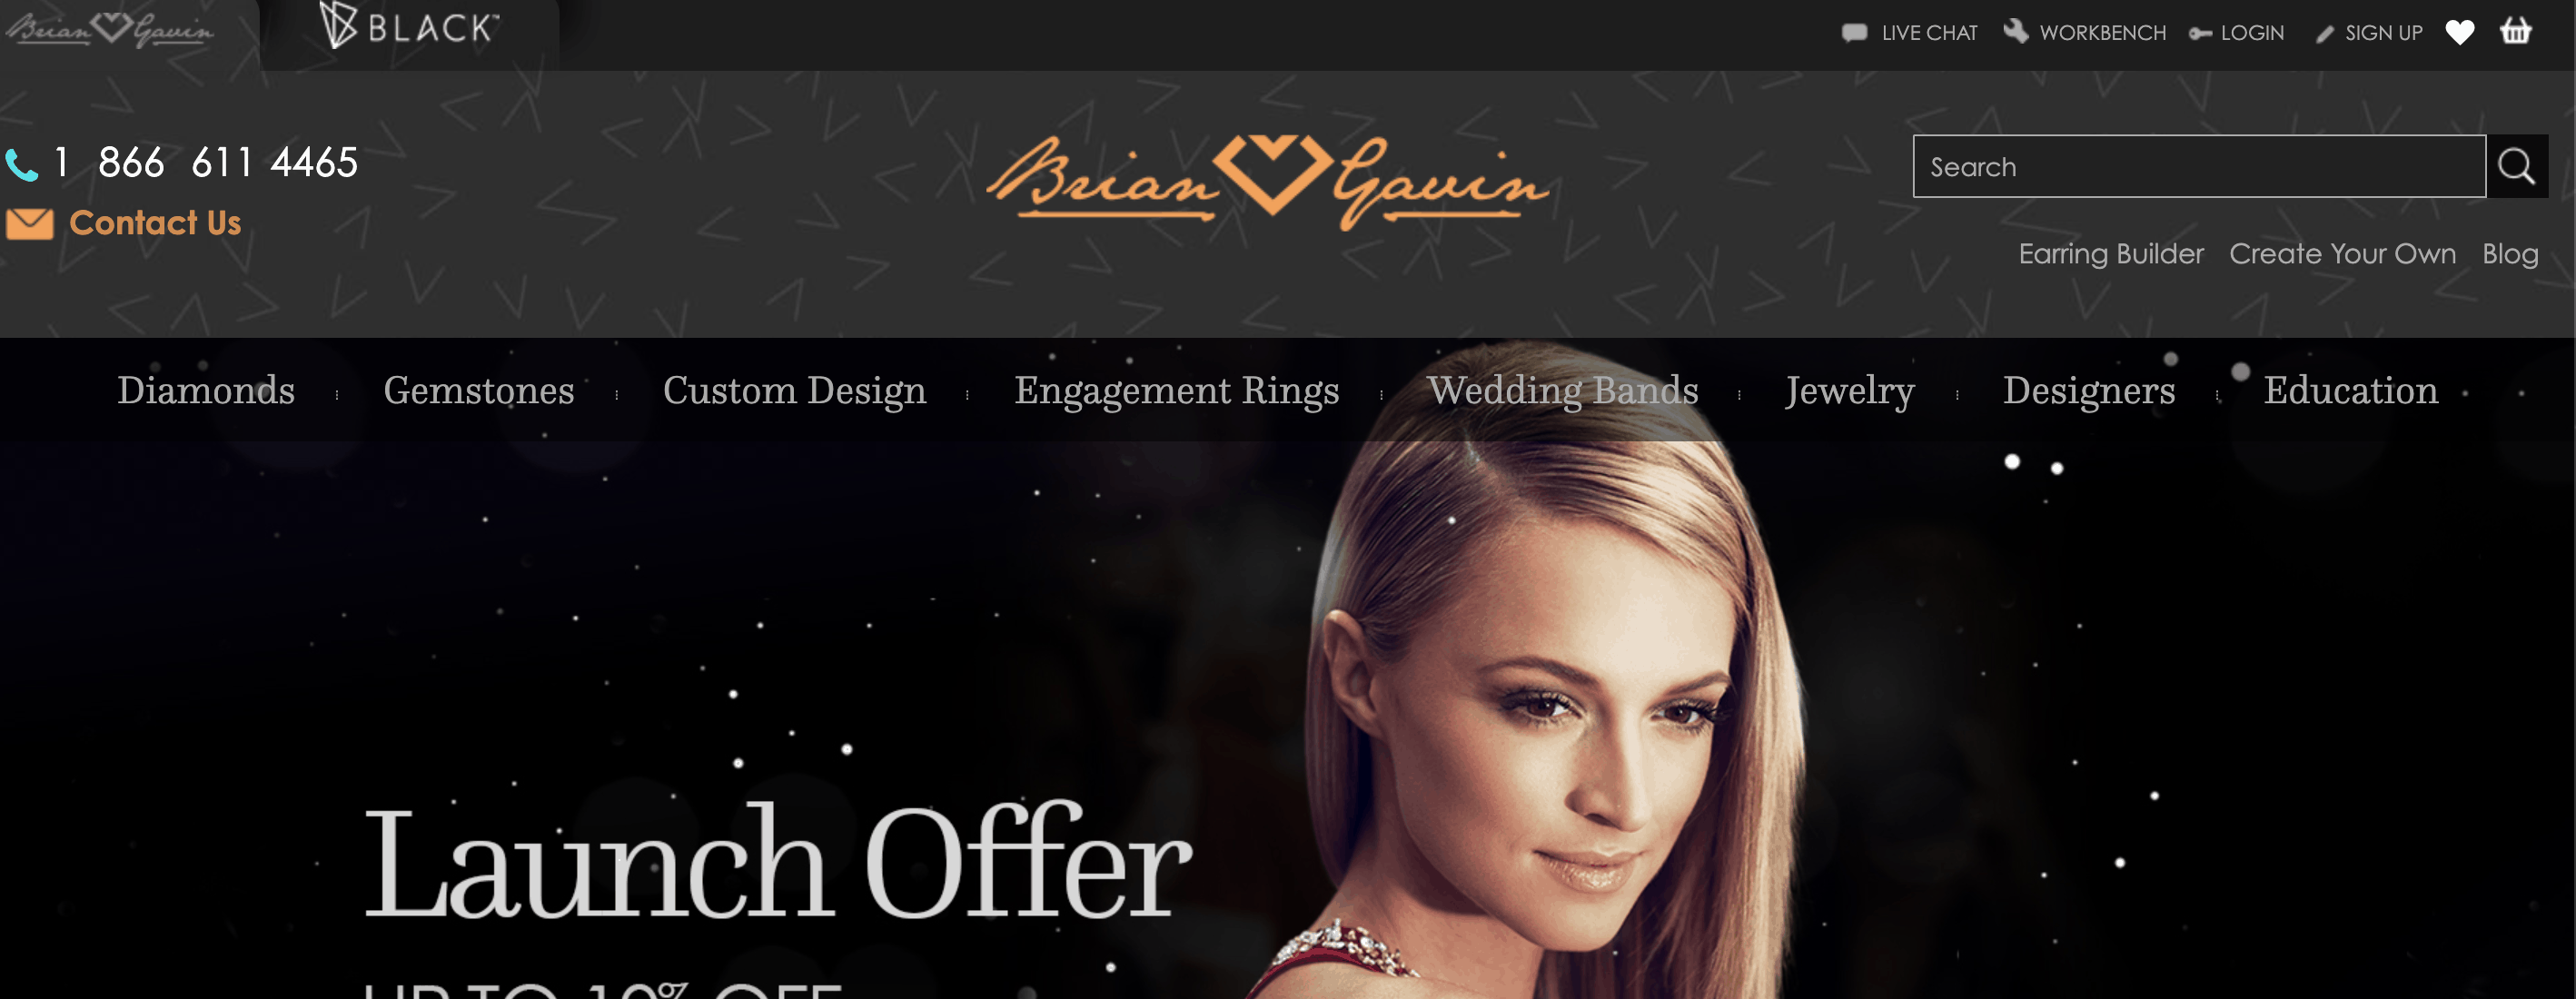 brian gavin online diamond earrings store